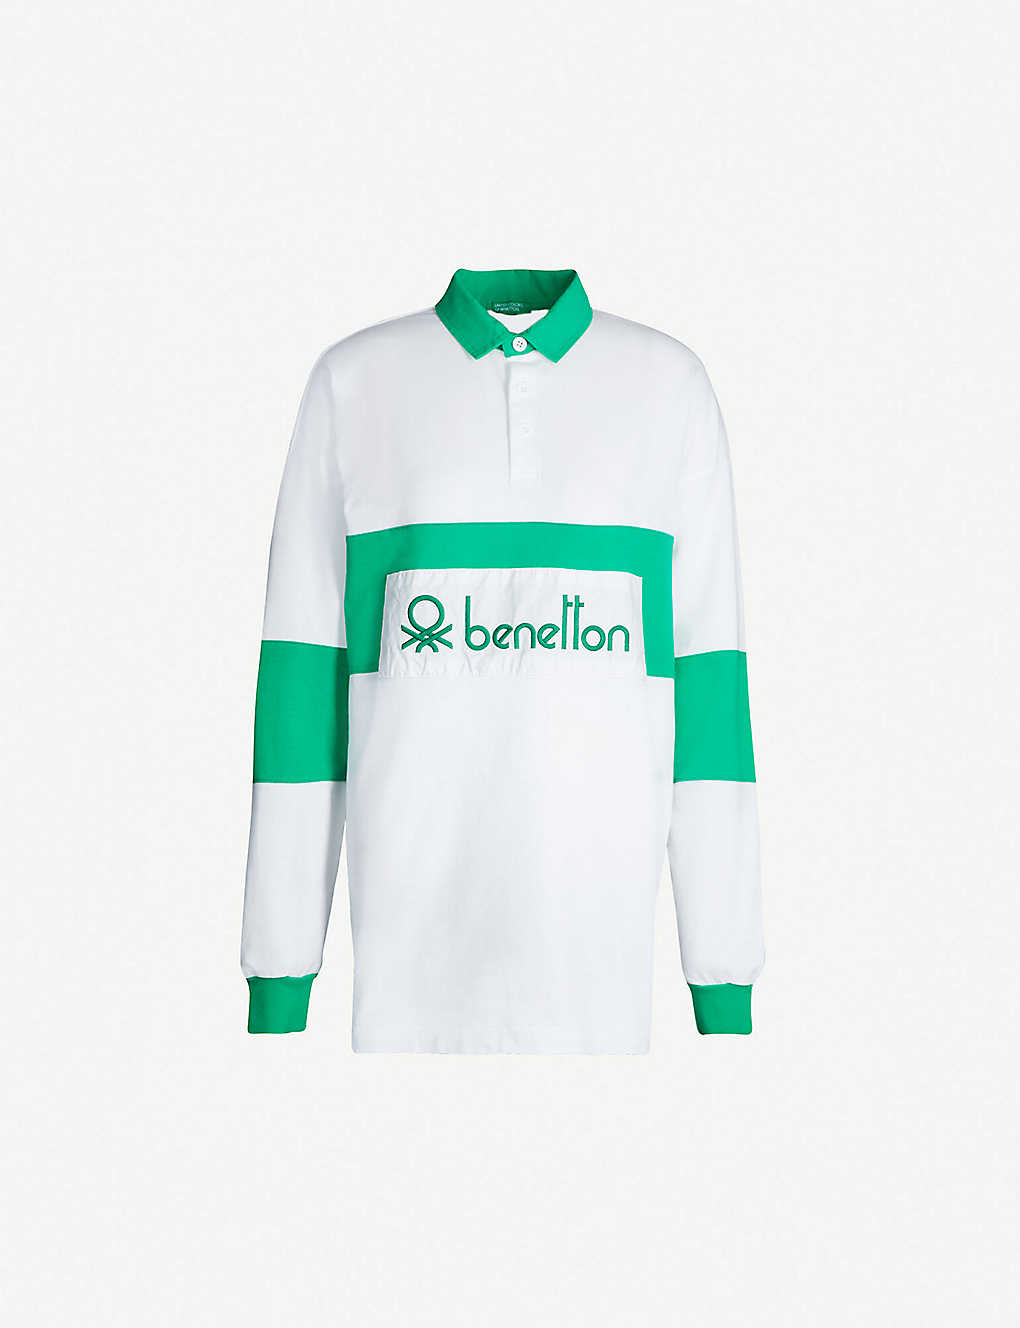 fee7f2046 BENETTON - Unisex logo-embroidered cotton-jersey polo shirt ...